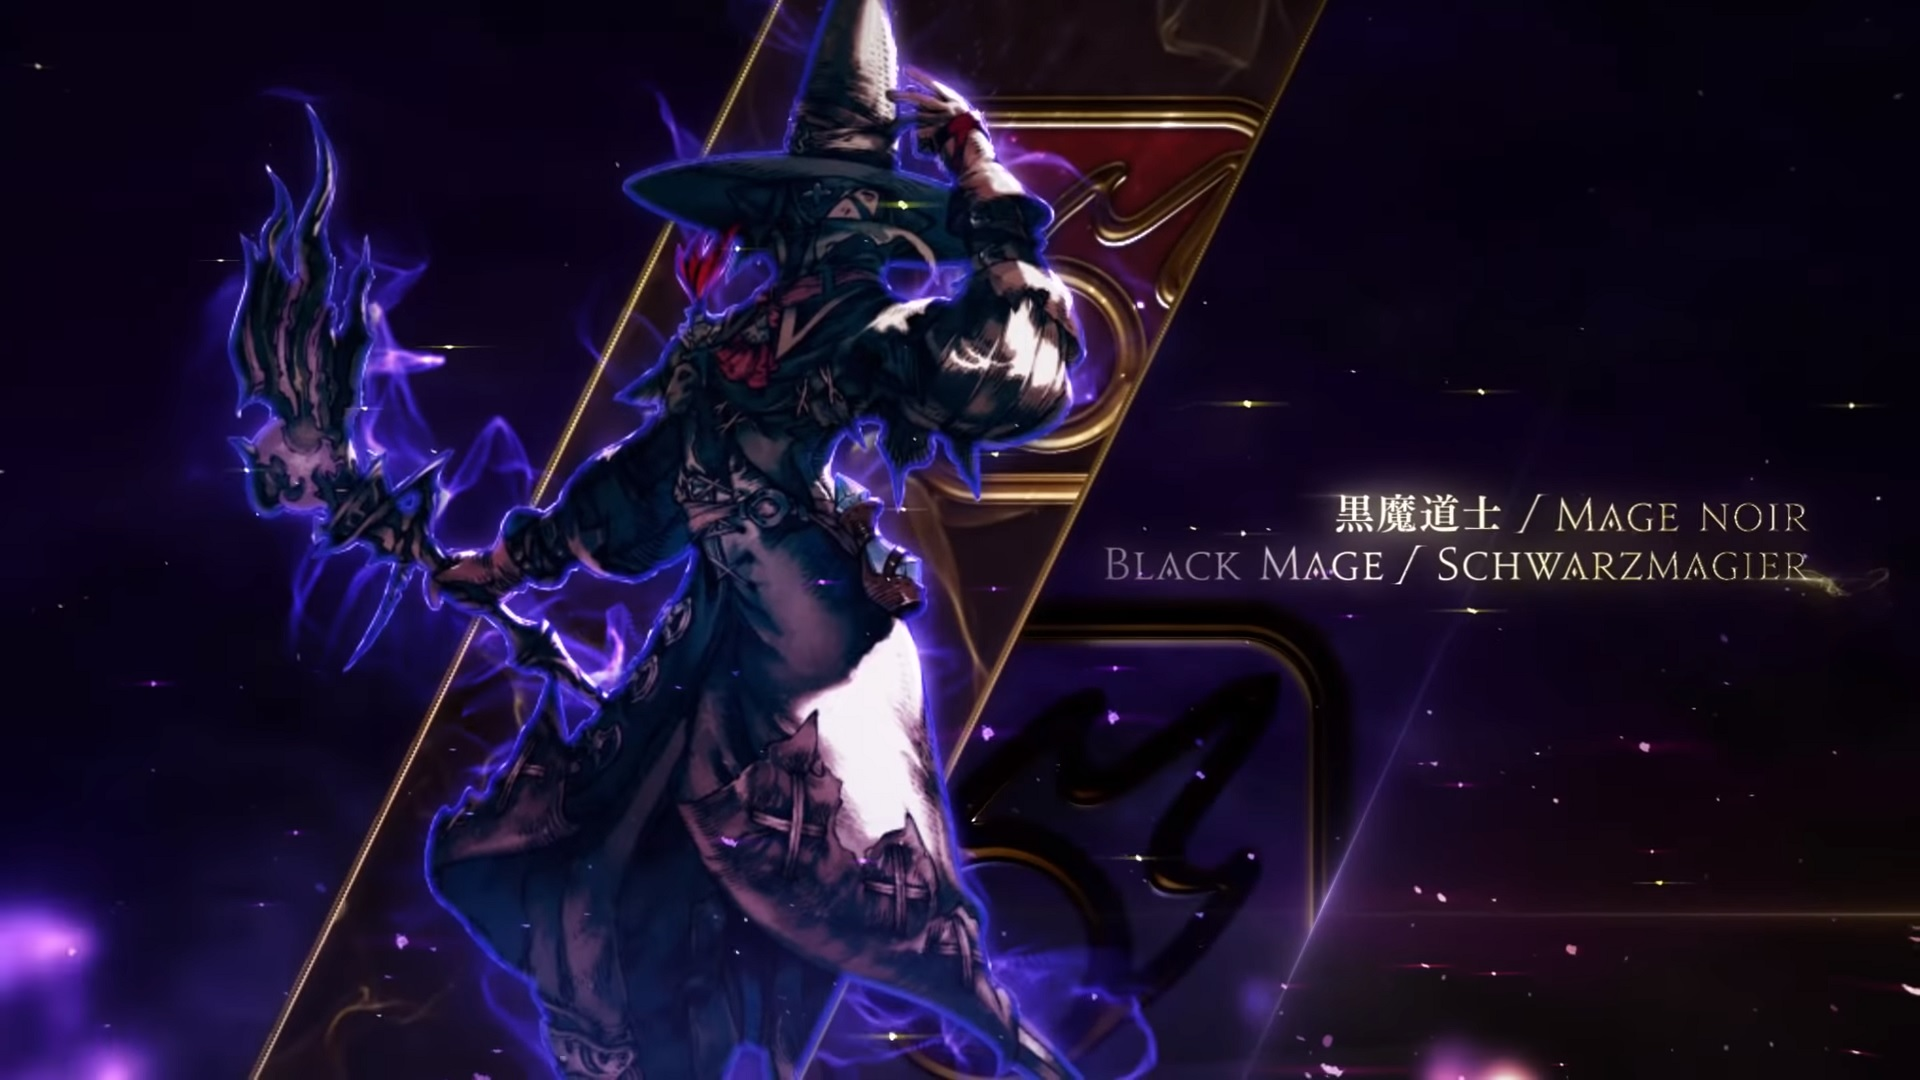 Ff14 Black Mage Job Guide Shadowbringers Changes Rework Skills